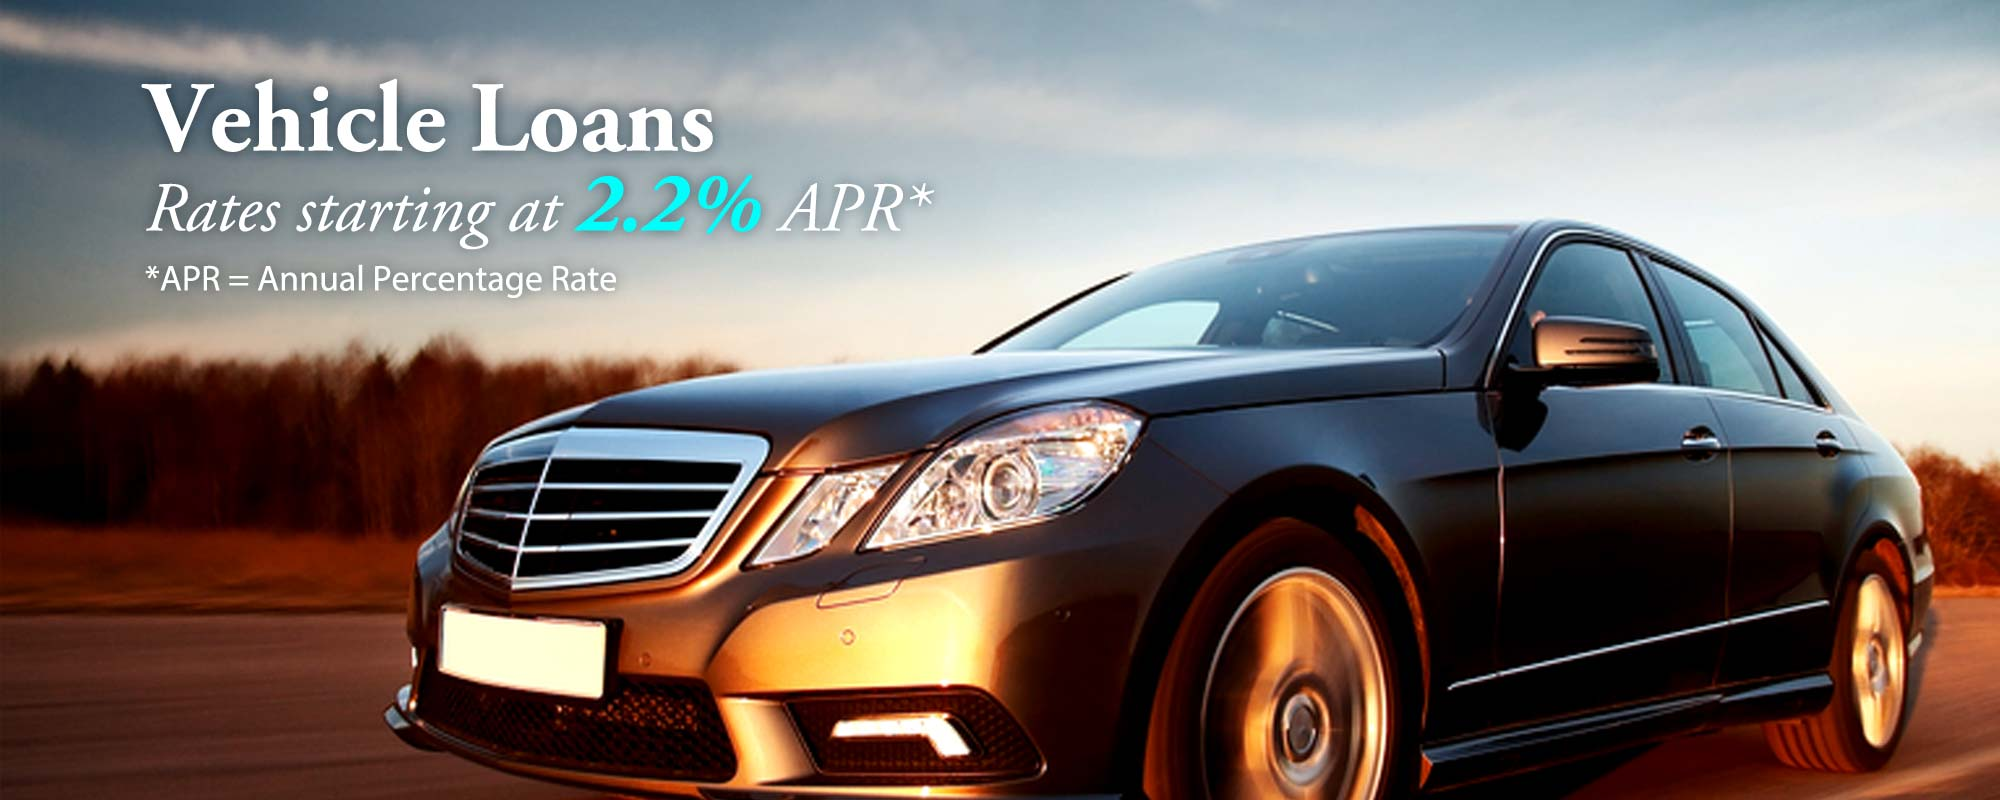 Vehicle Loans...rates starting at 2.2% Annual Percentage Rate